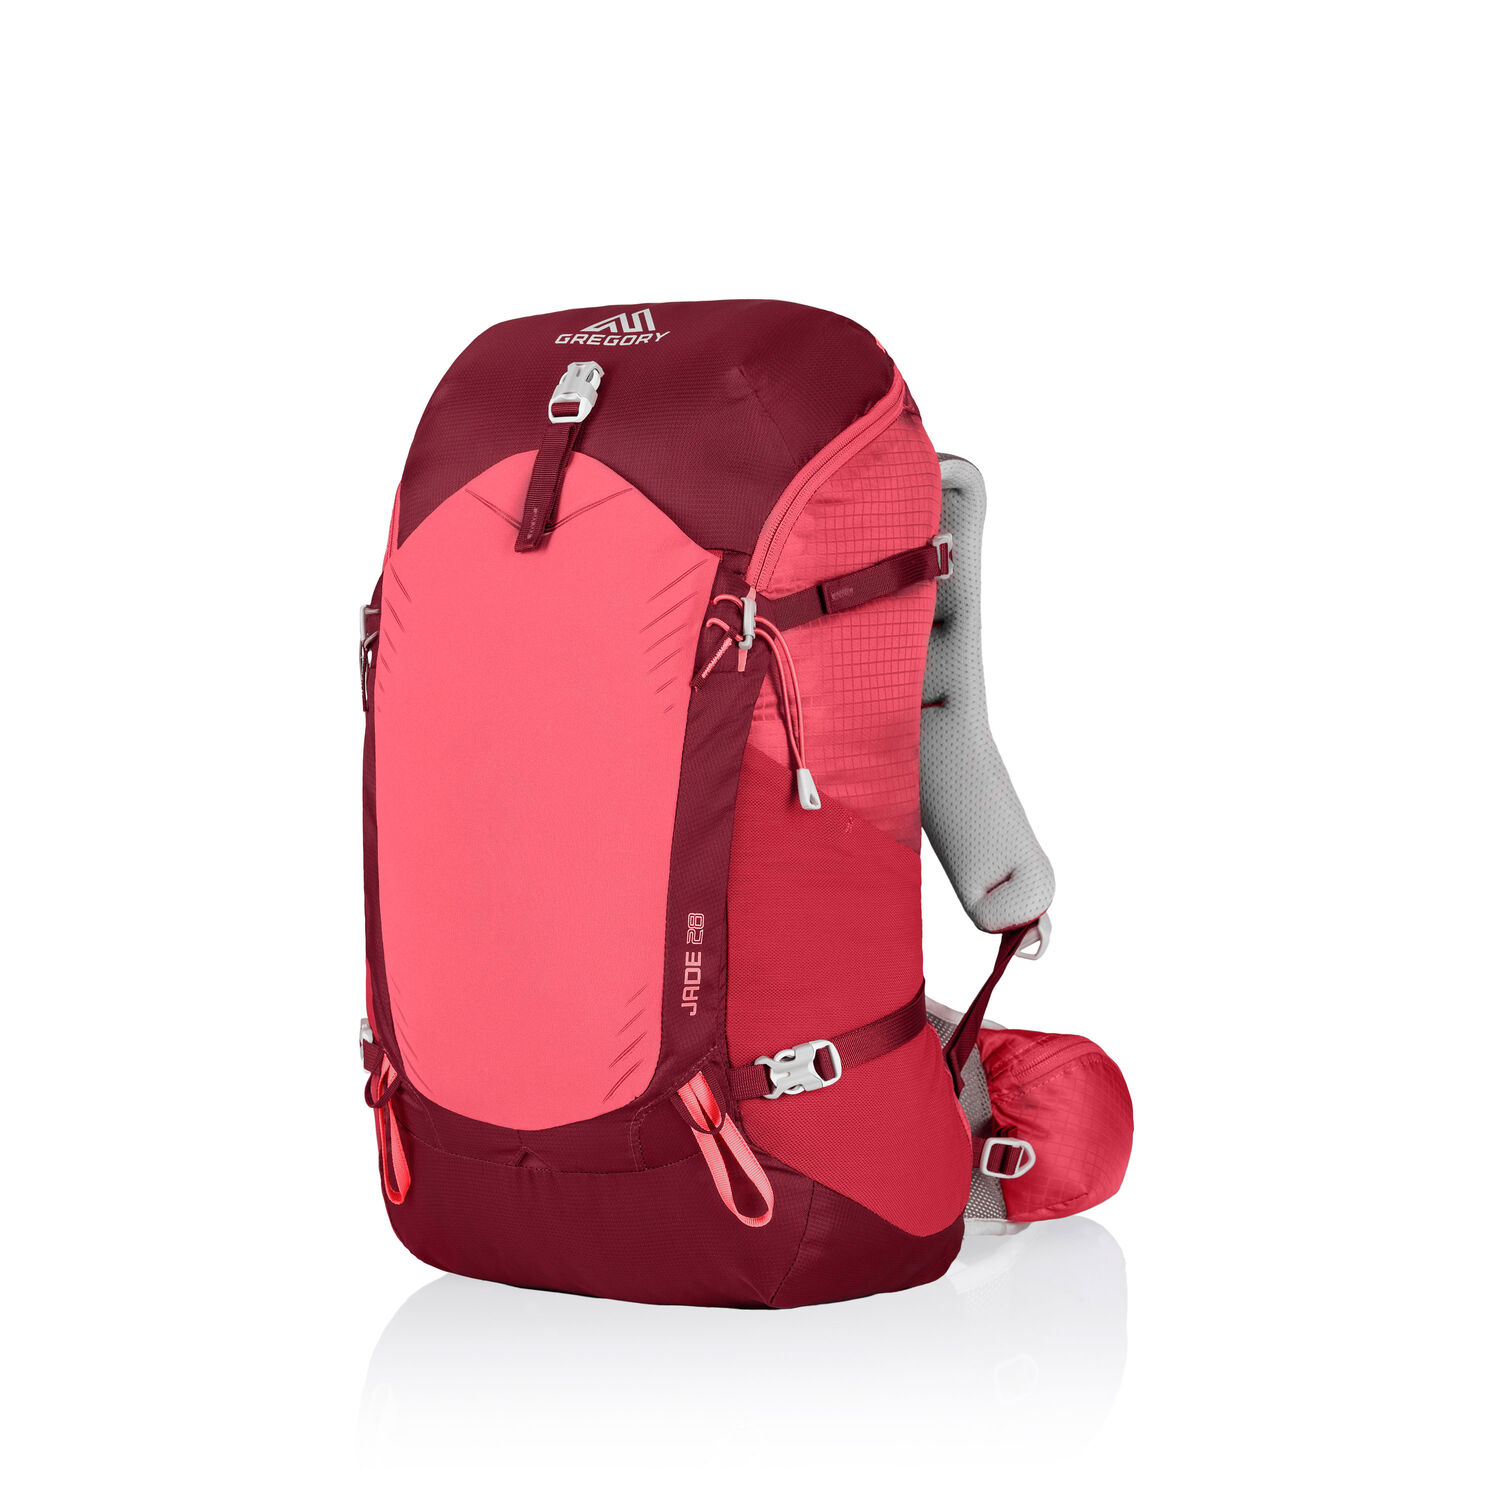 Jade 28 in the color Ruby Red.